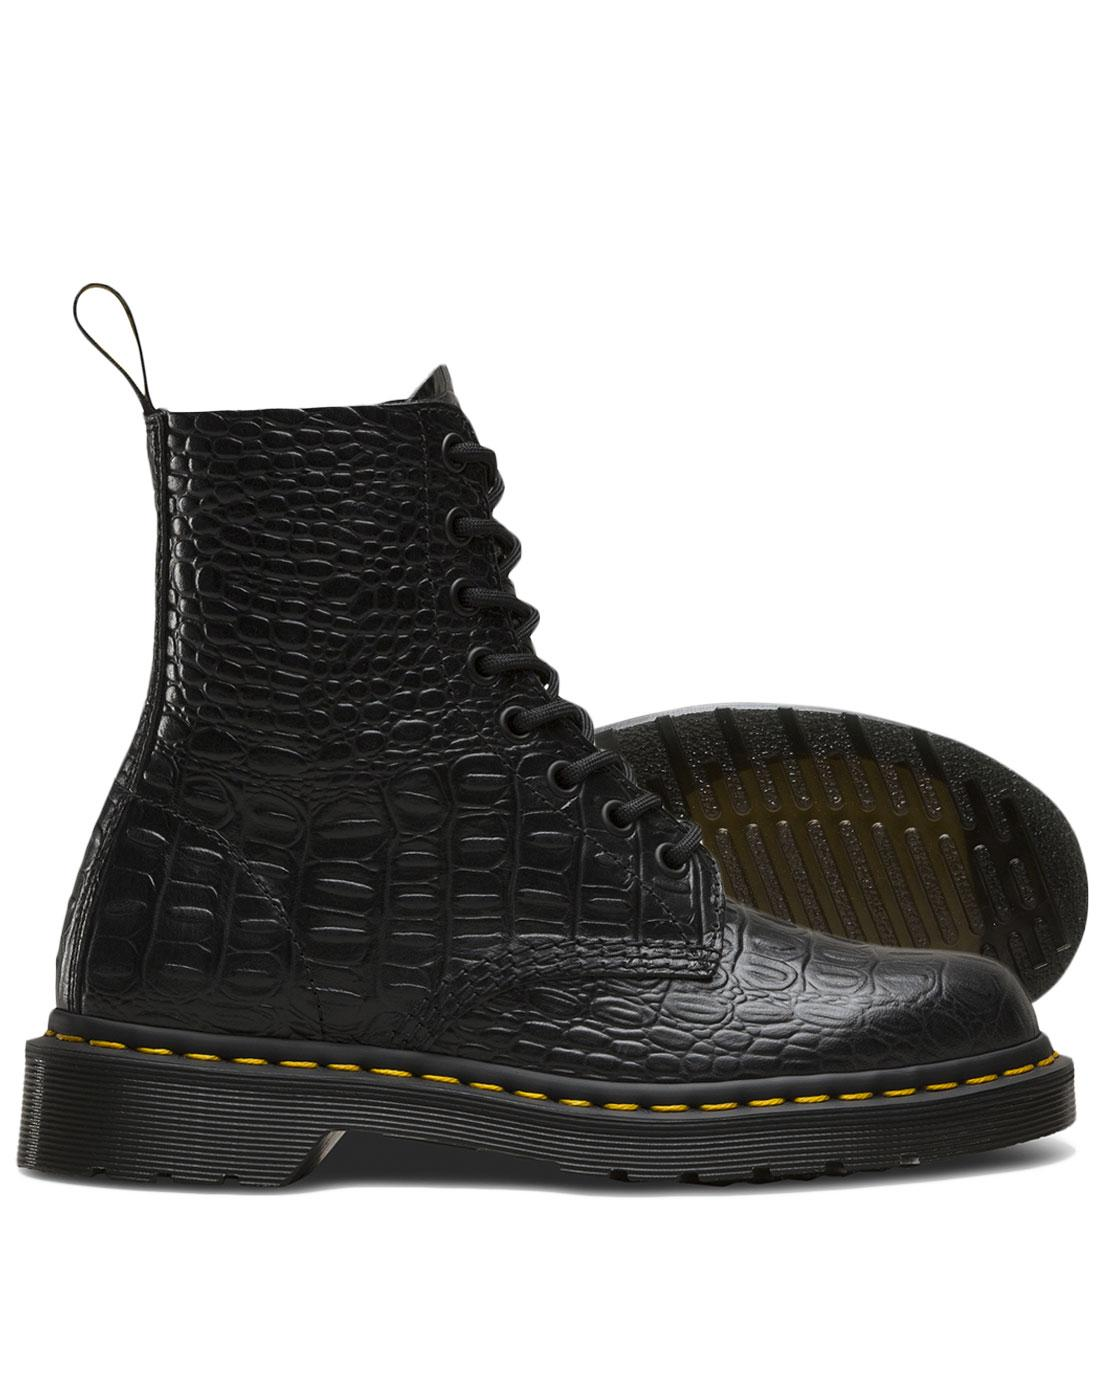 a855ff48b580ae DR MARTENS Pascal Croc Retro Faux Crocodile Stamp 8 Eyelet Boots